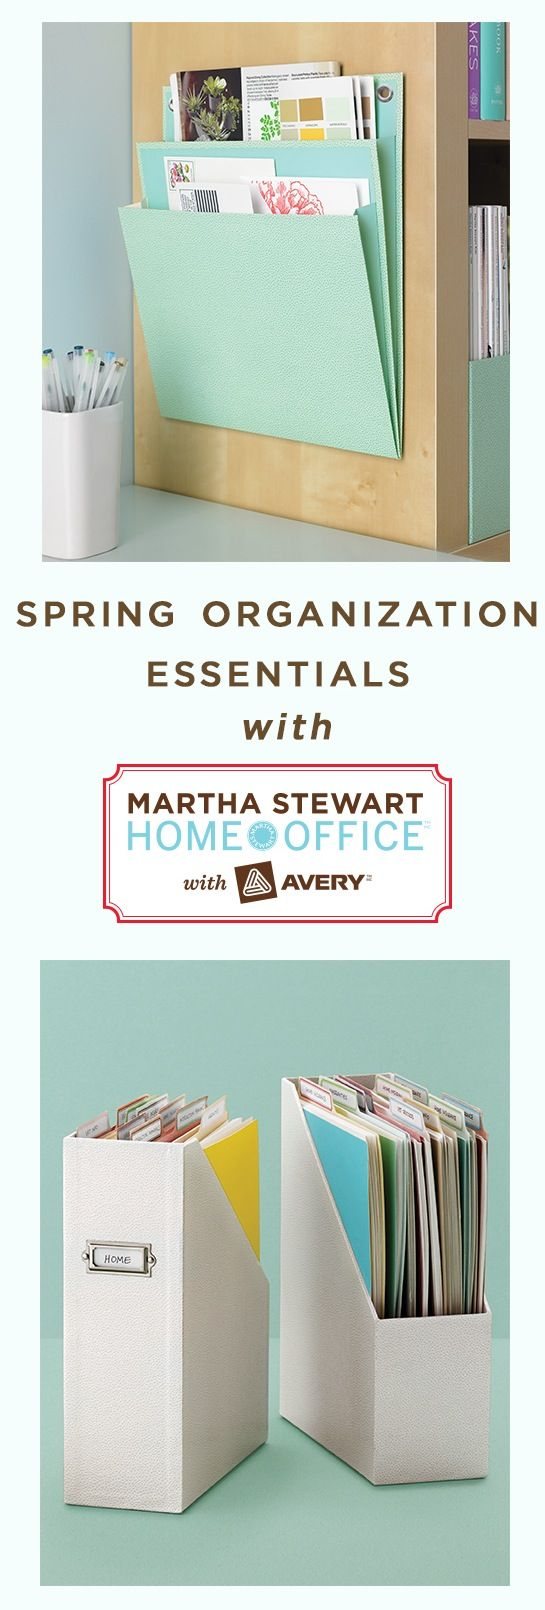 Nine #MarthaStewartHomeOffice products that will simplify your spring cleaning and organizing